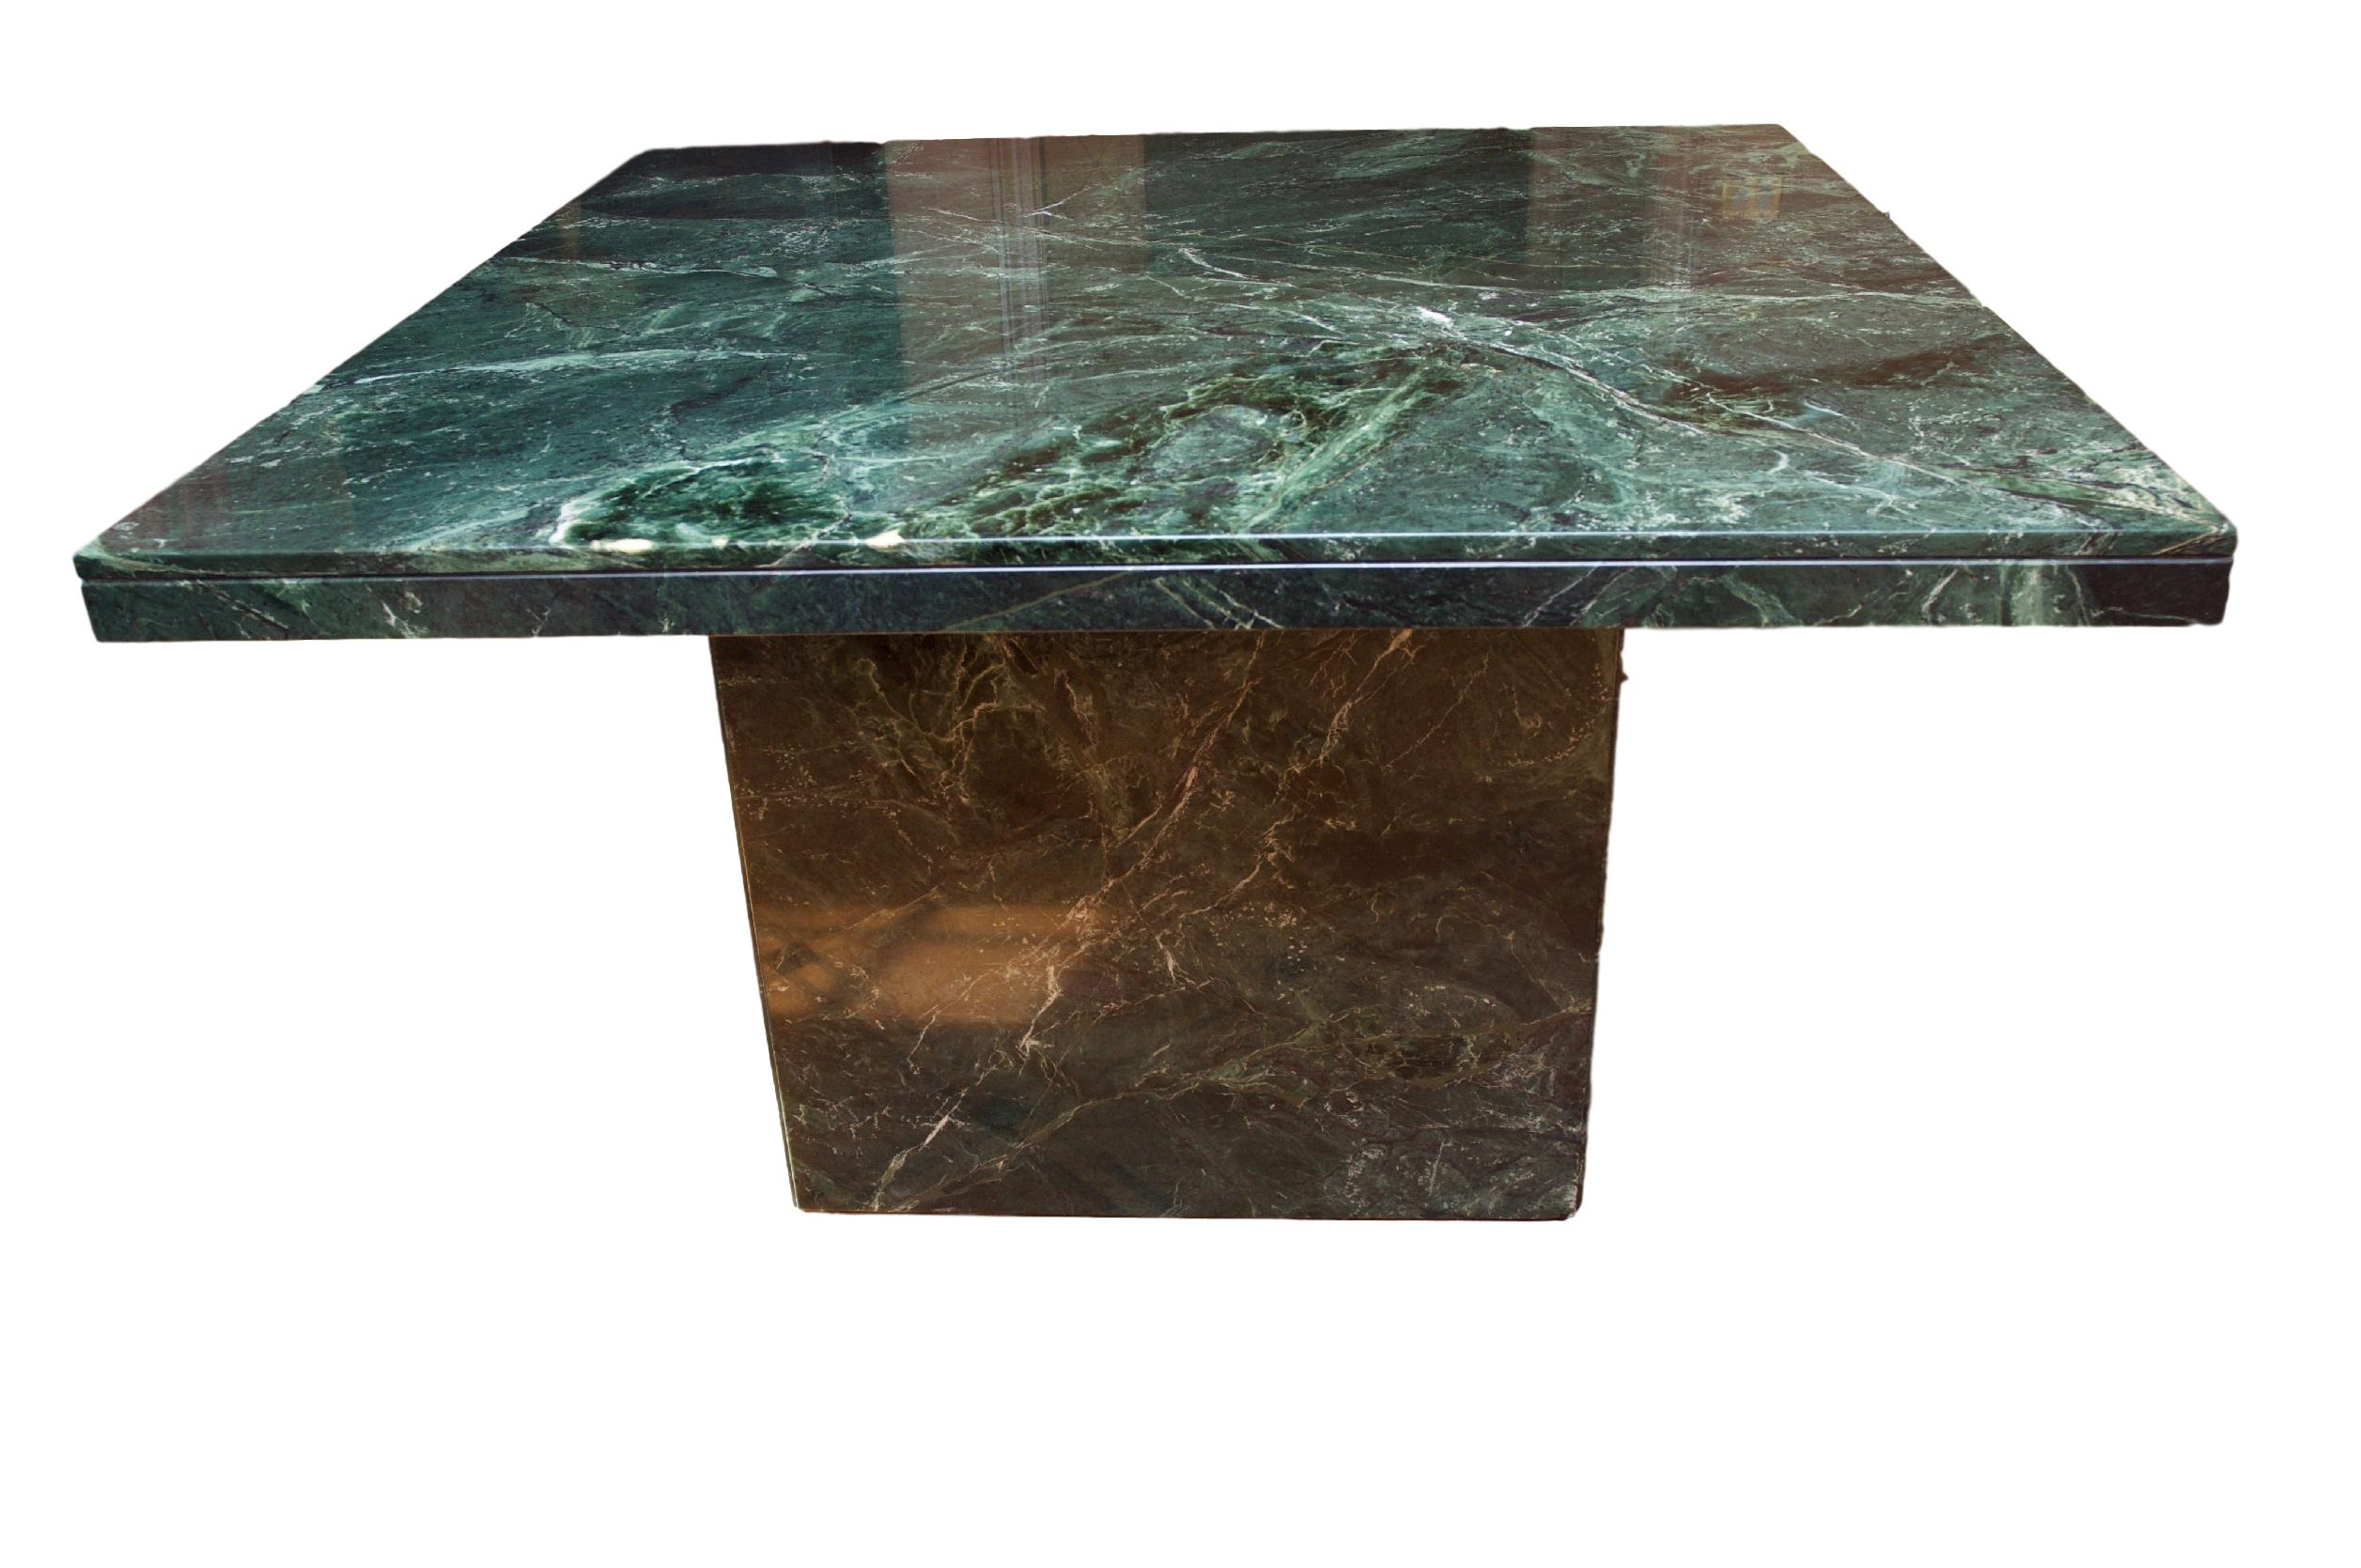 Modern Square Green Marble Dining Table Chairish : modern square green marble dining table 3843 from www.chairish.com size 2513 x 1669 jpeg 305kB